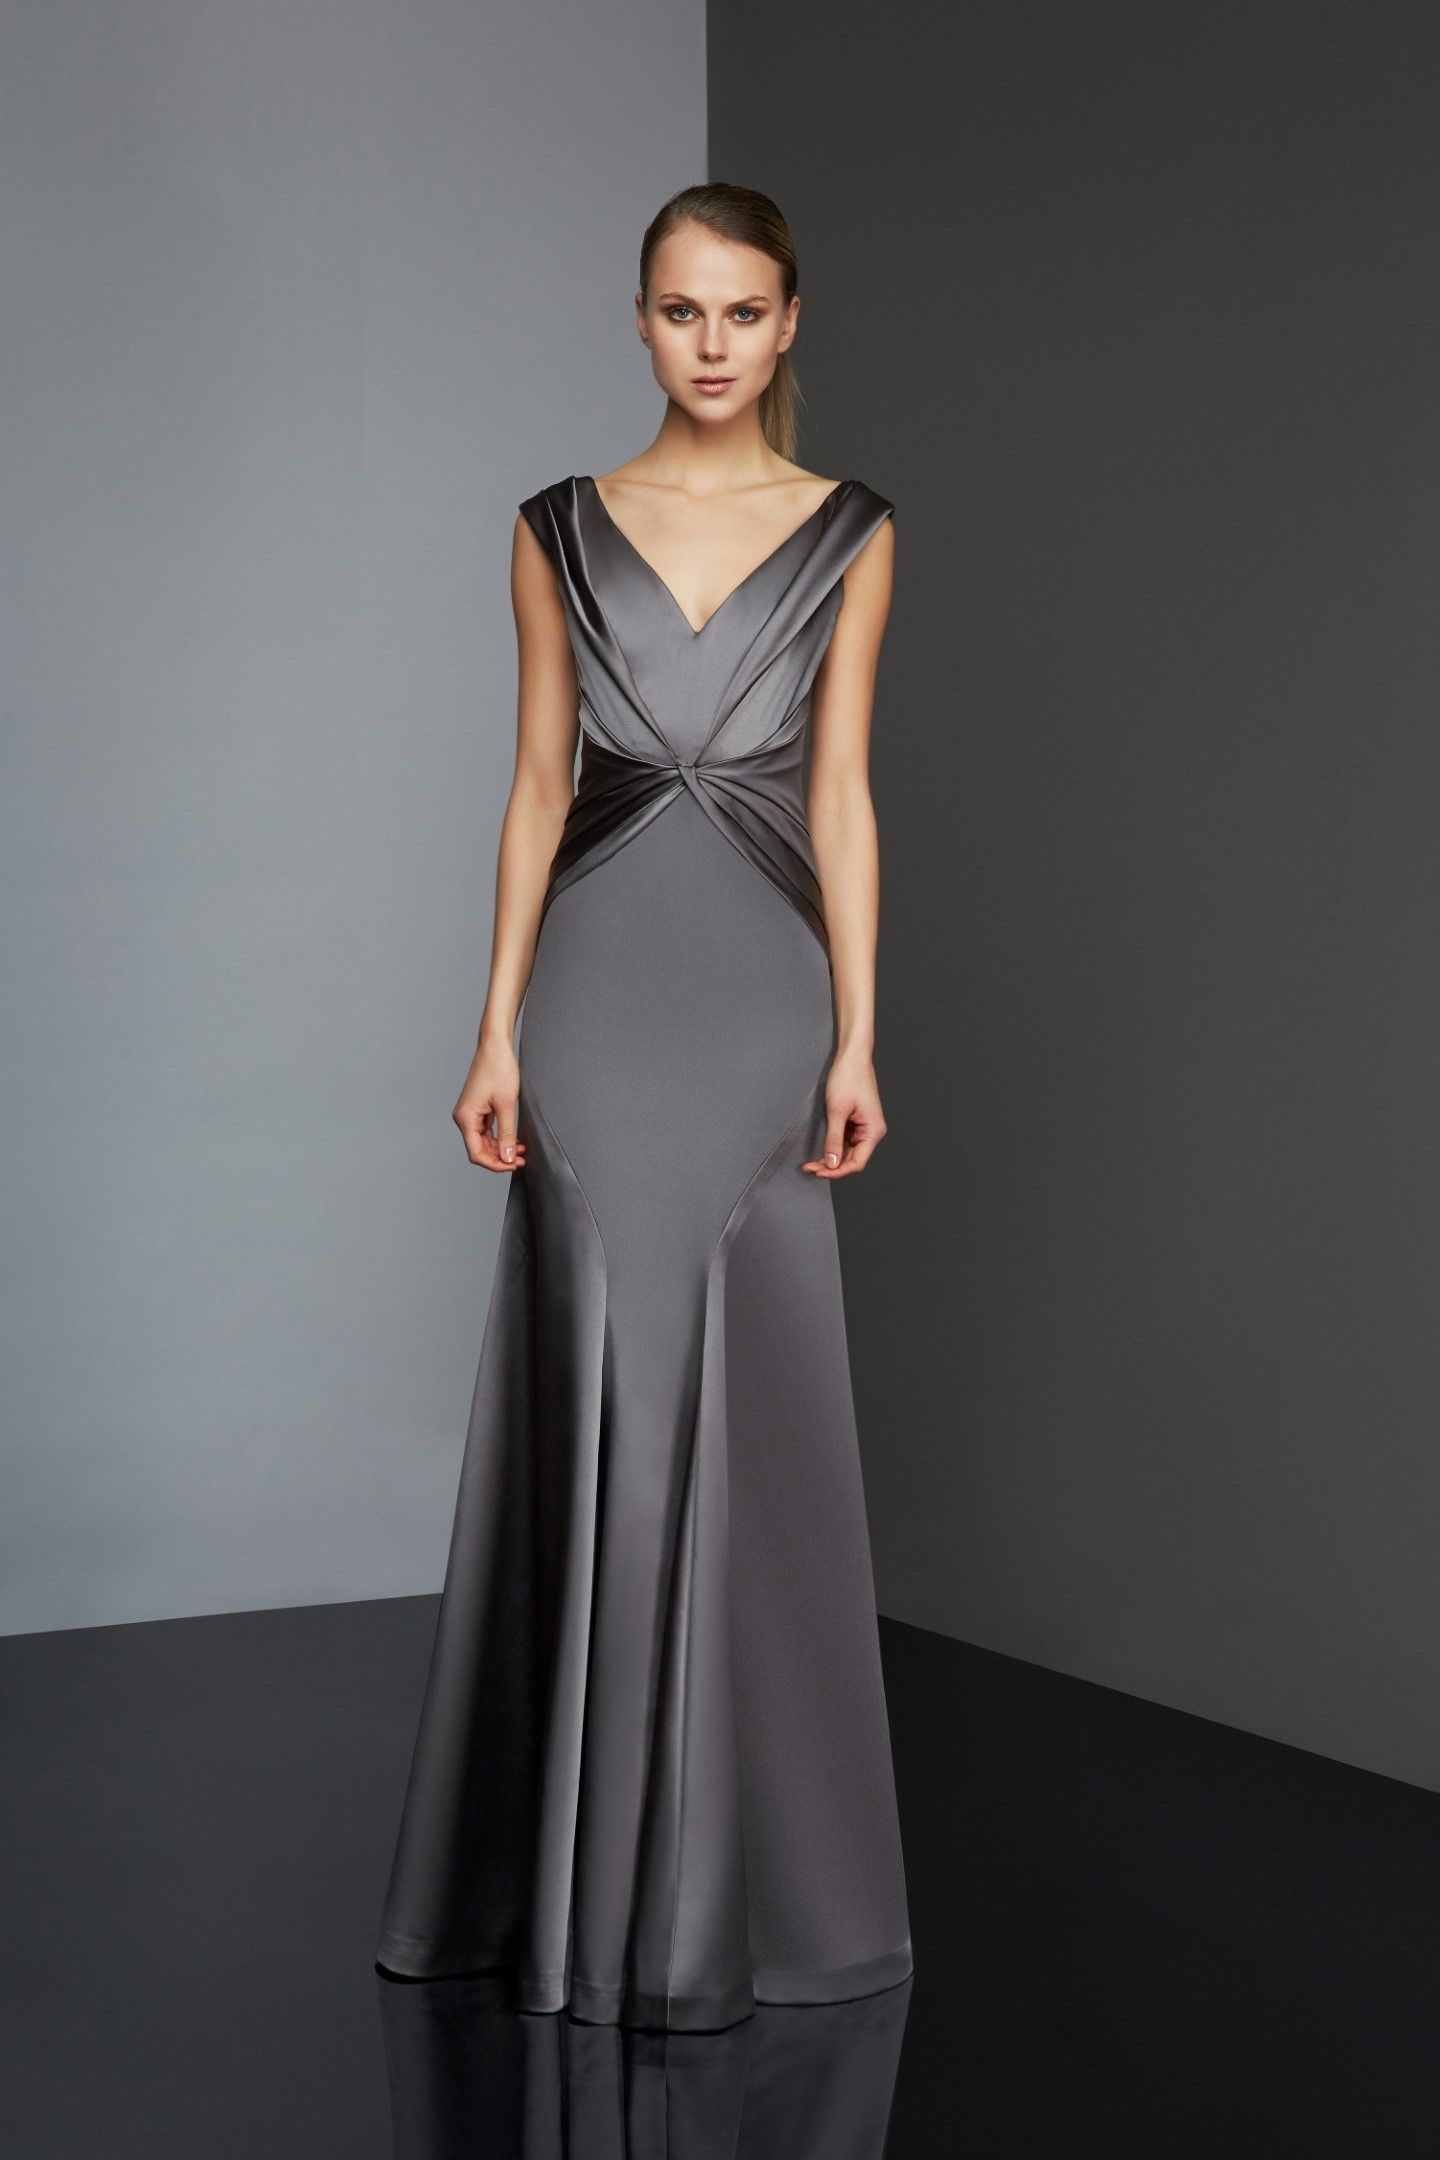 eda5195f118 DILEK HANIF READY TO WEAR FALL WINTER 2014-2015 Haute Couture Designers